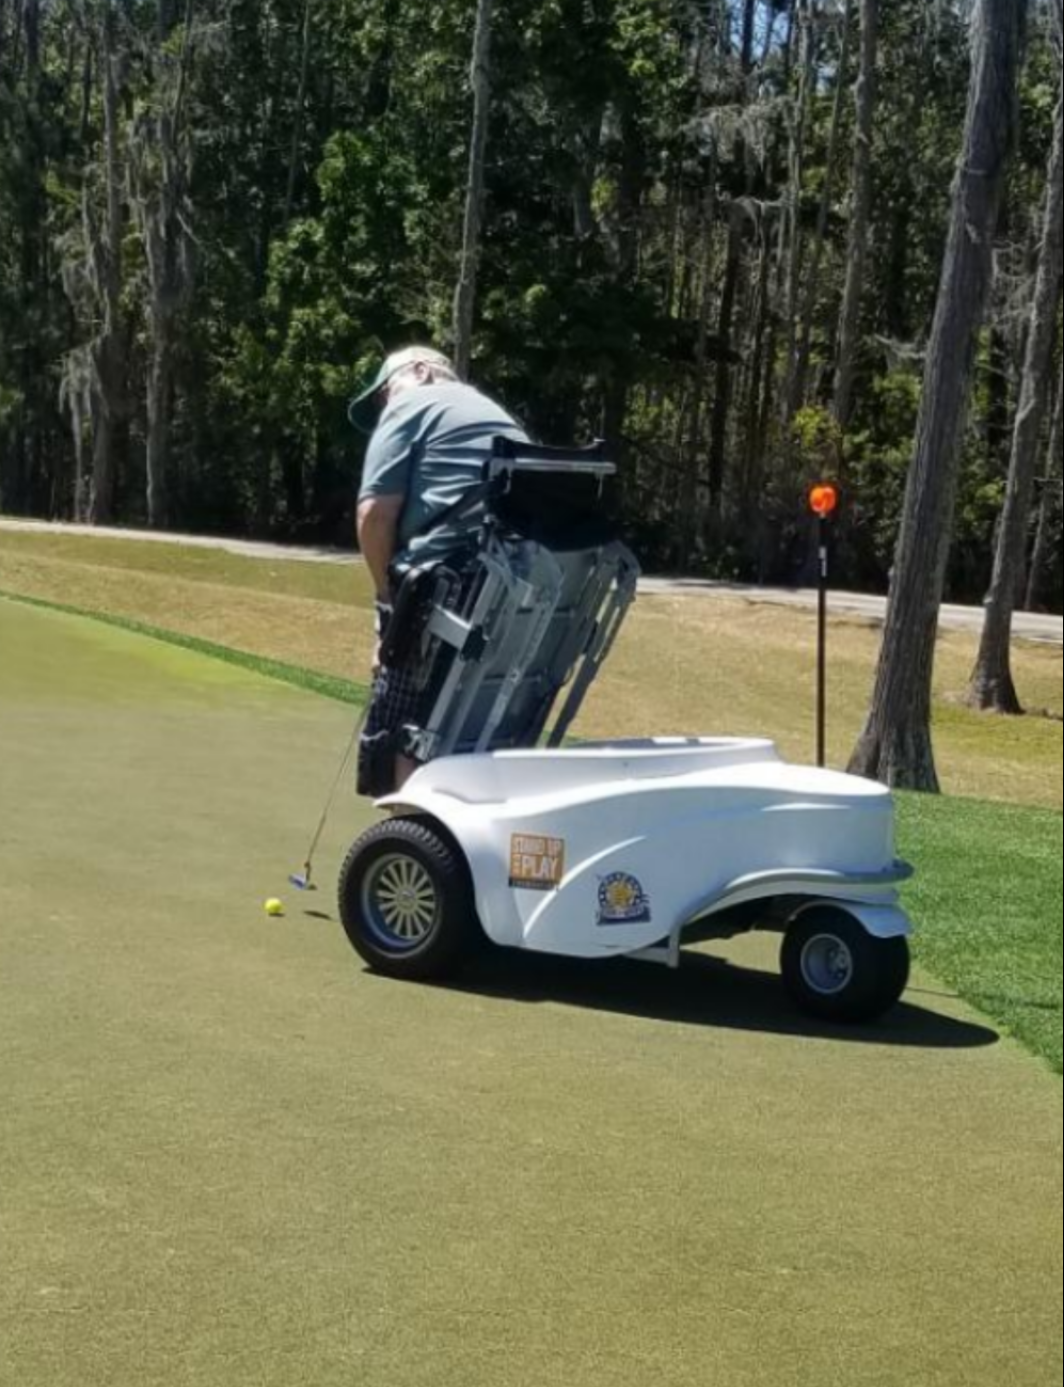 A man using a ParaGolfer to play golf.